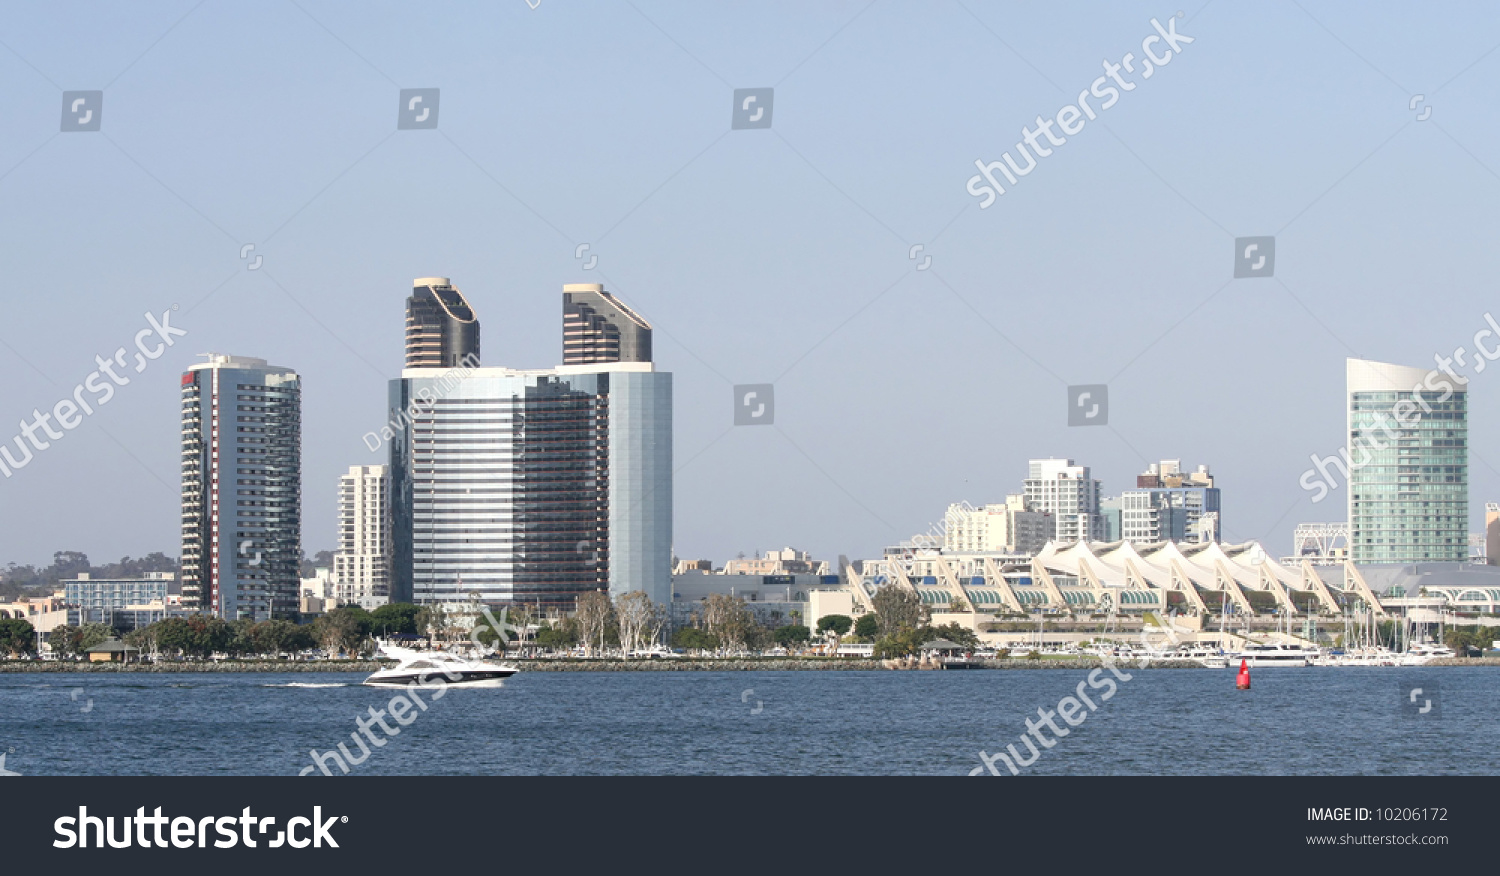 Th the largest city in california - San Diego Is The Second Largest City In California And The Eighth Largest City In The